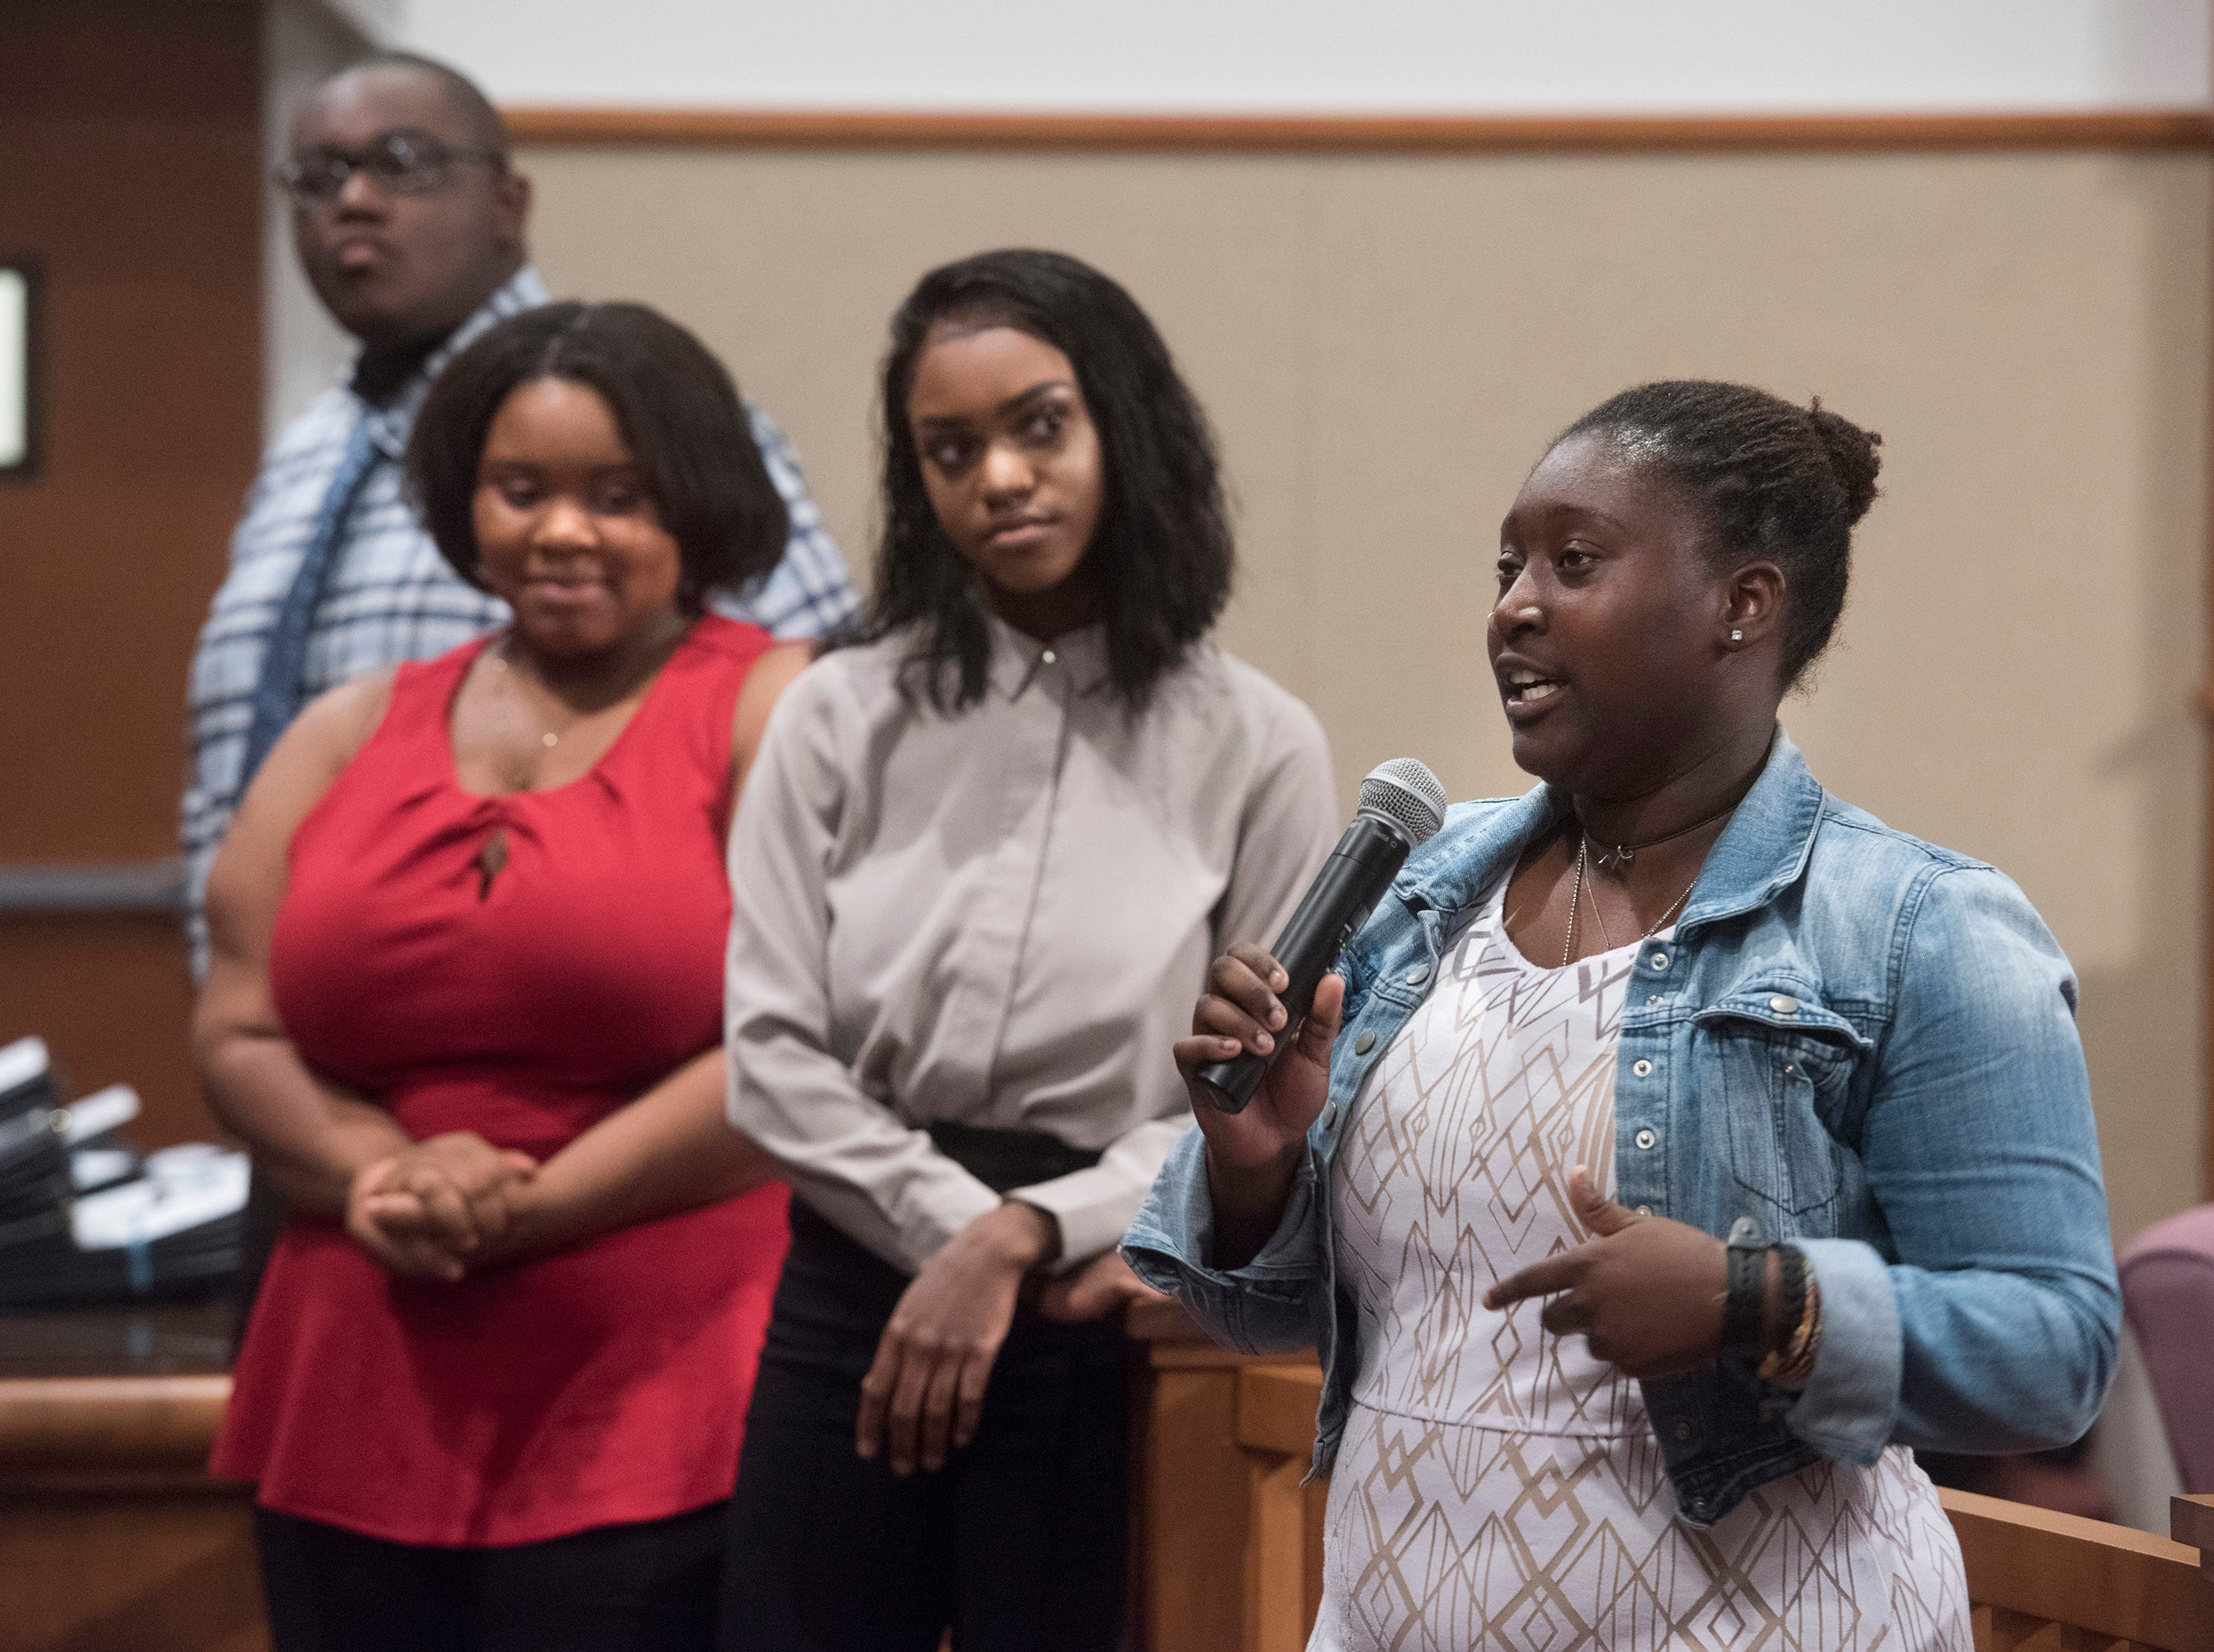 Destinee Pagett, right, praises Escambia County for its student internship program during a ceremony in the commission chambers to recognize the young workers Thursday, Aug. 9, 2018